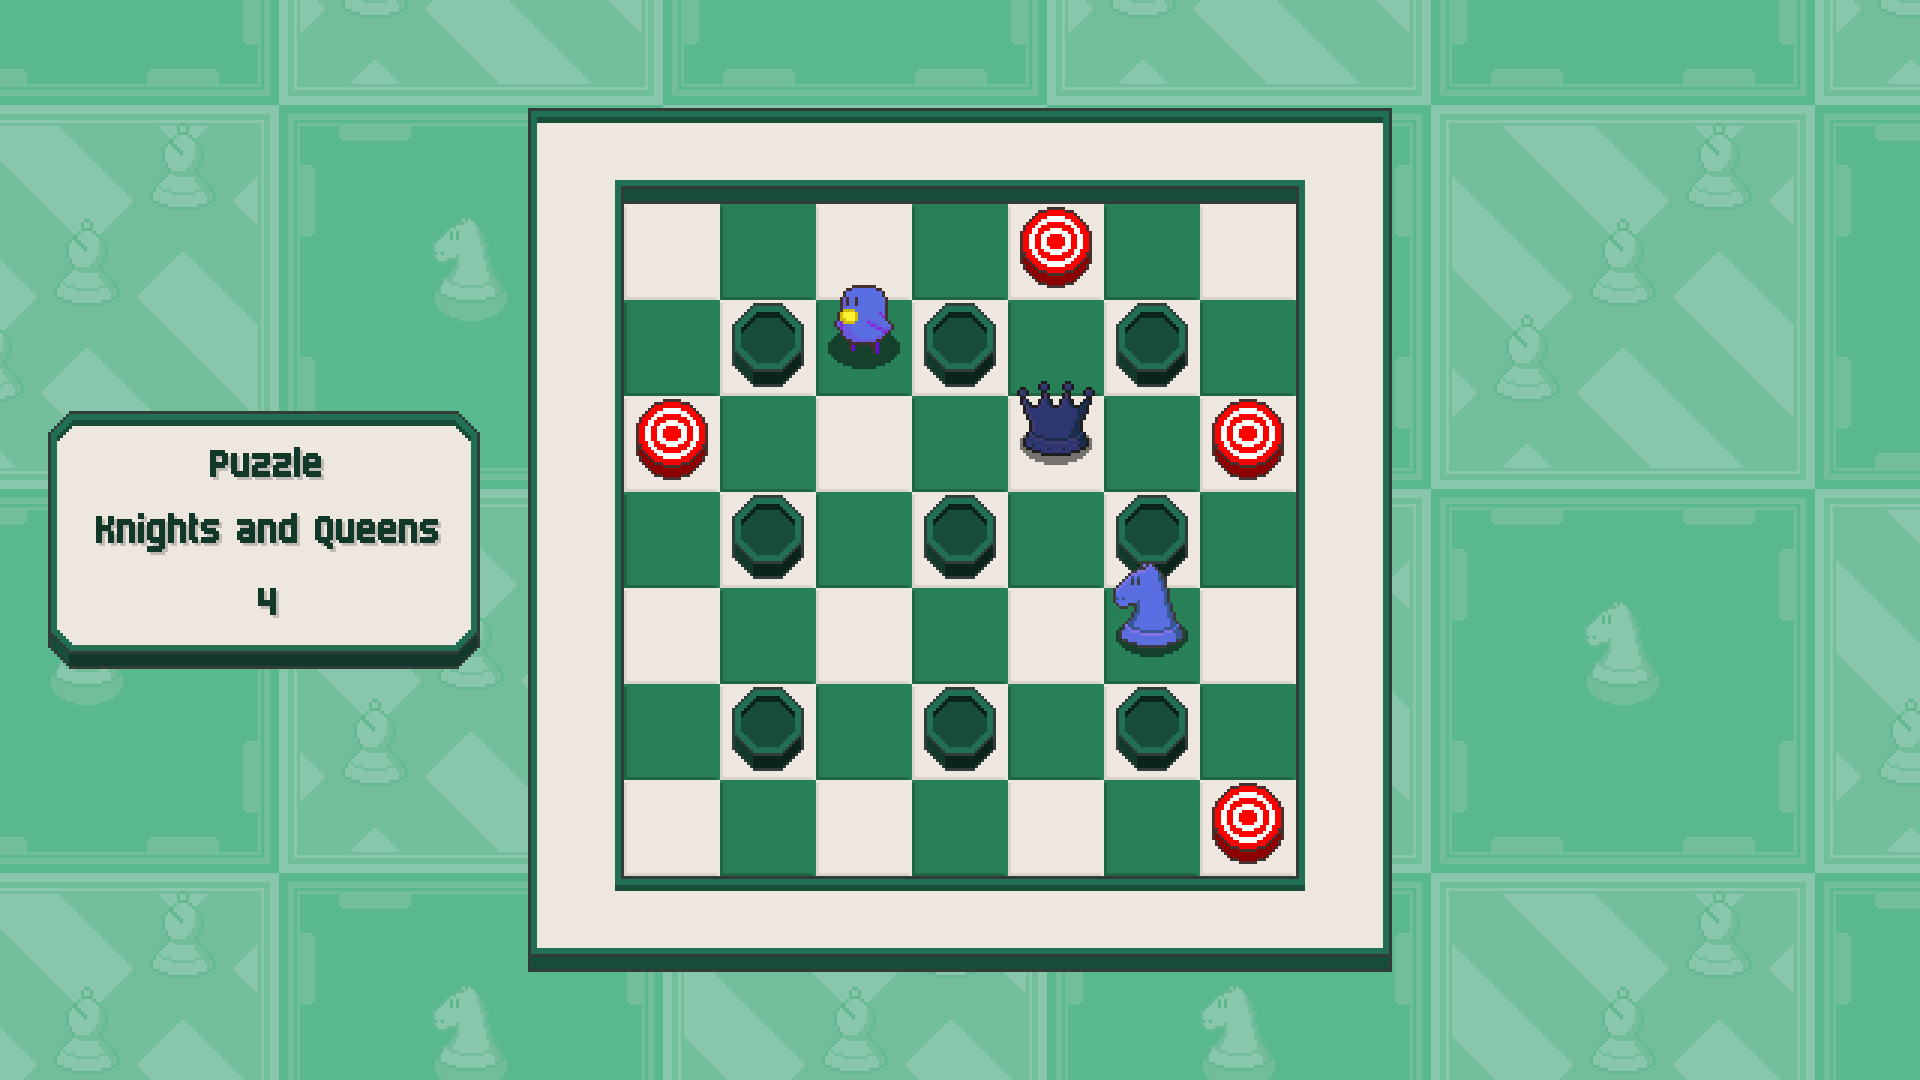 Chessplosion - Puzzle Solution Guide + Achievements Walkthrough - Grandblaster: Knights and Queens - B1A59F2